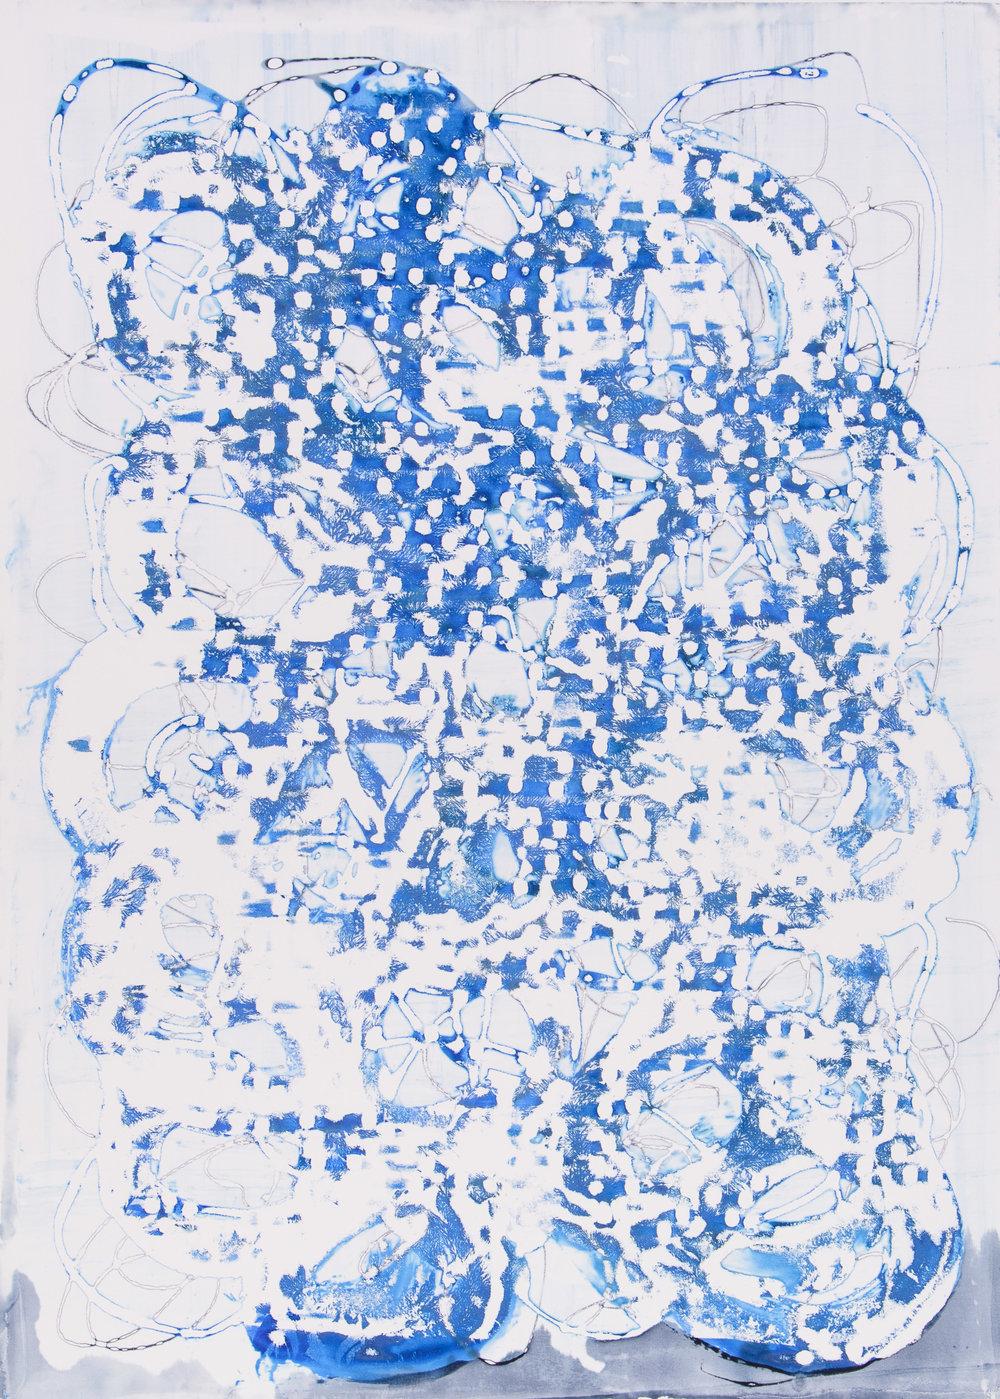 Blue Yonder I, 33X43. Silkscreen painting on paper, 2017. SOLD.